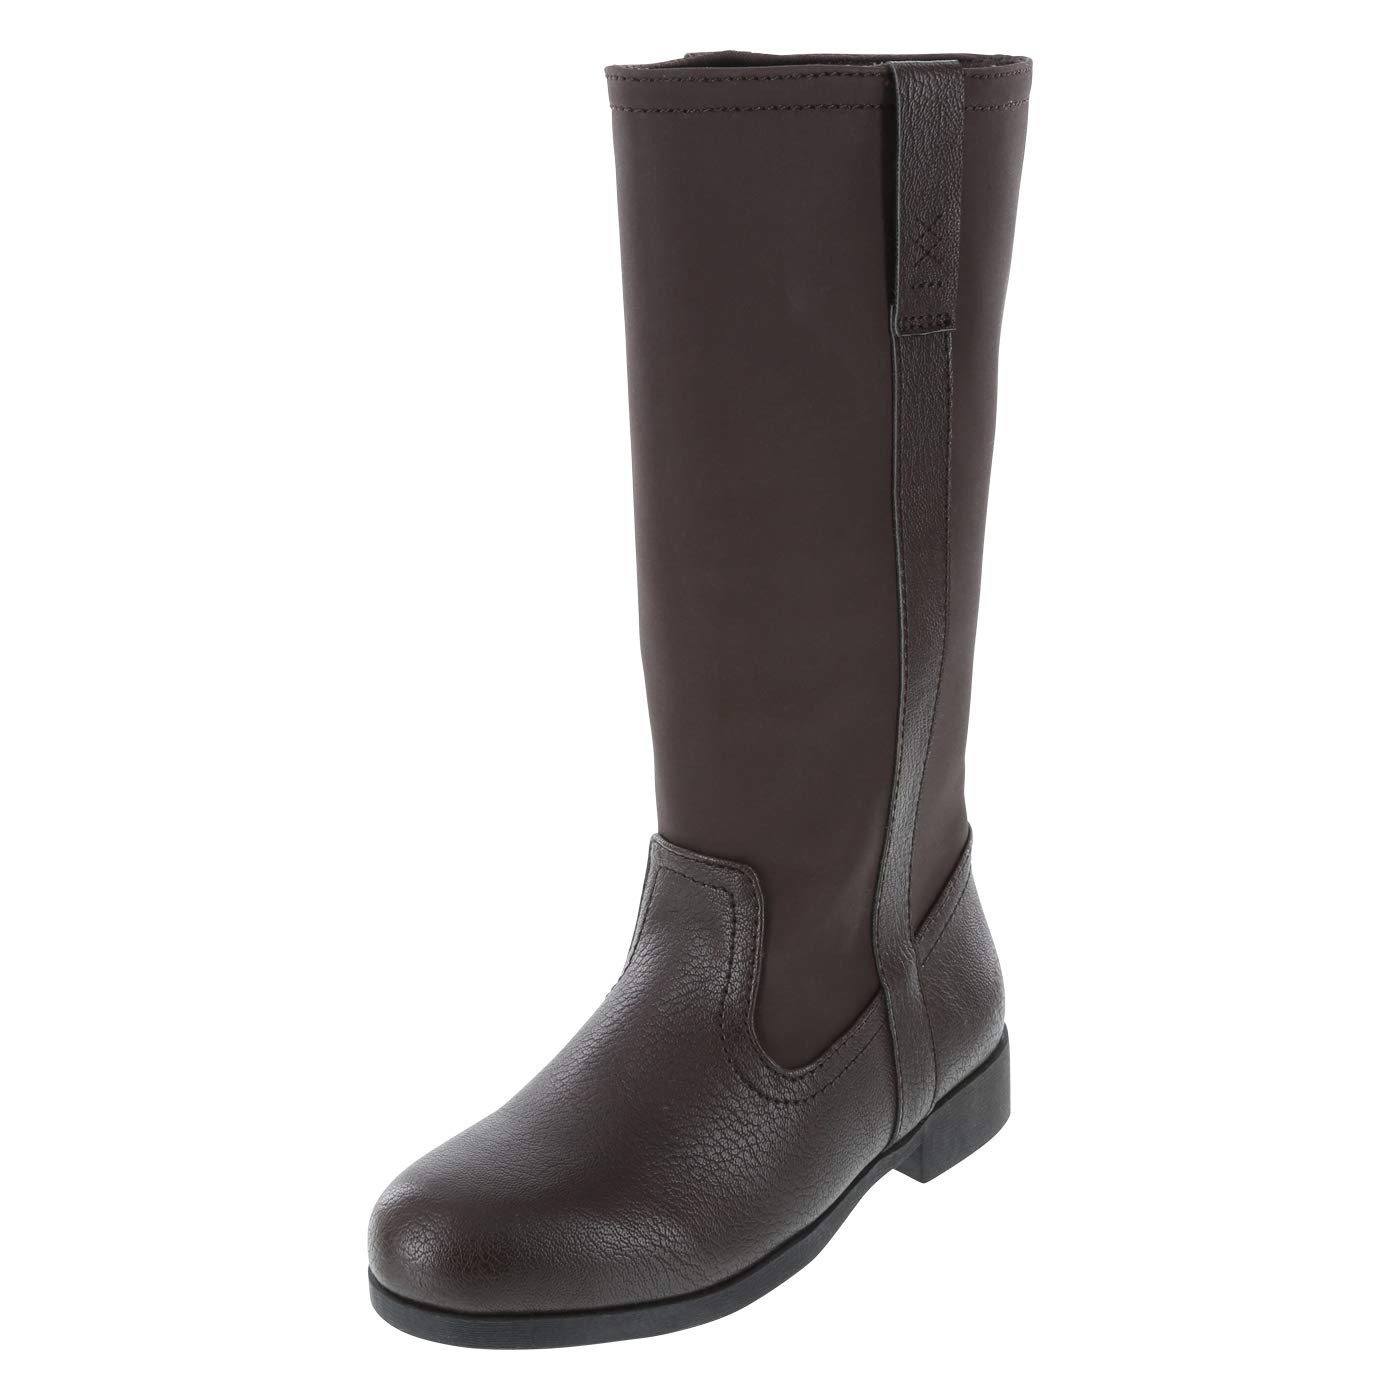 Zoe and Zac Girls' Carrie Riding Boot 079018-Parent